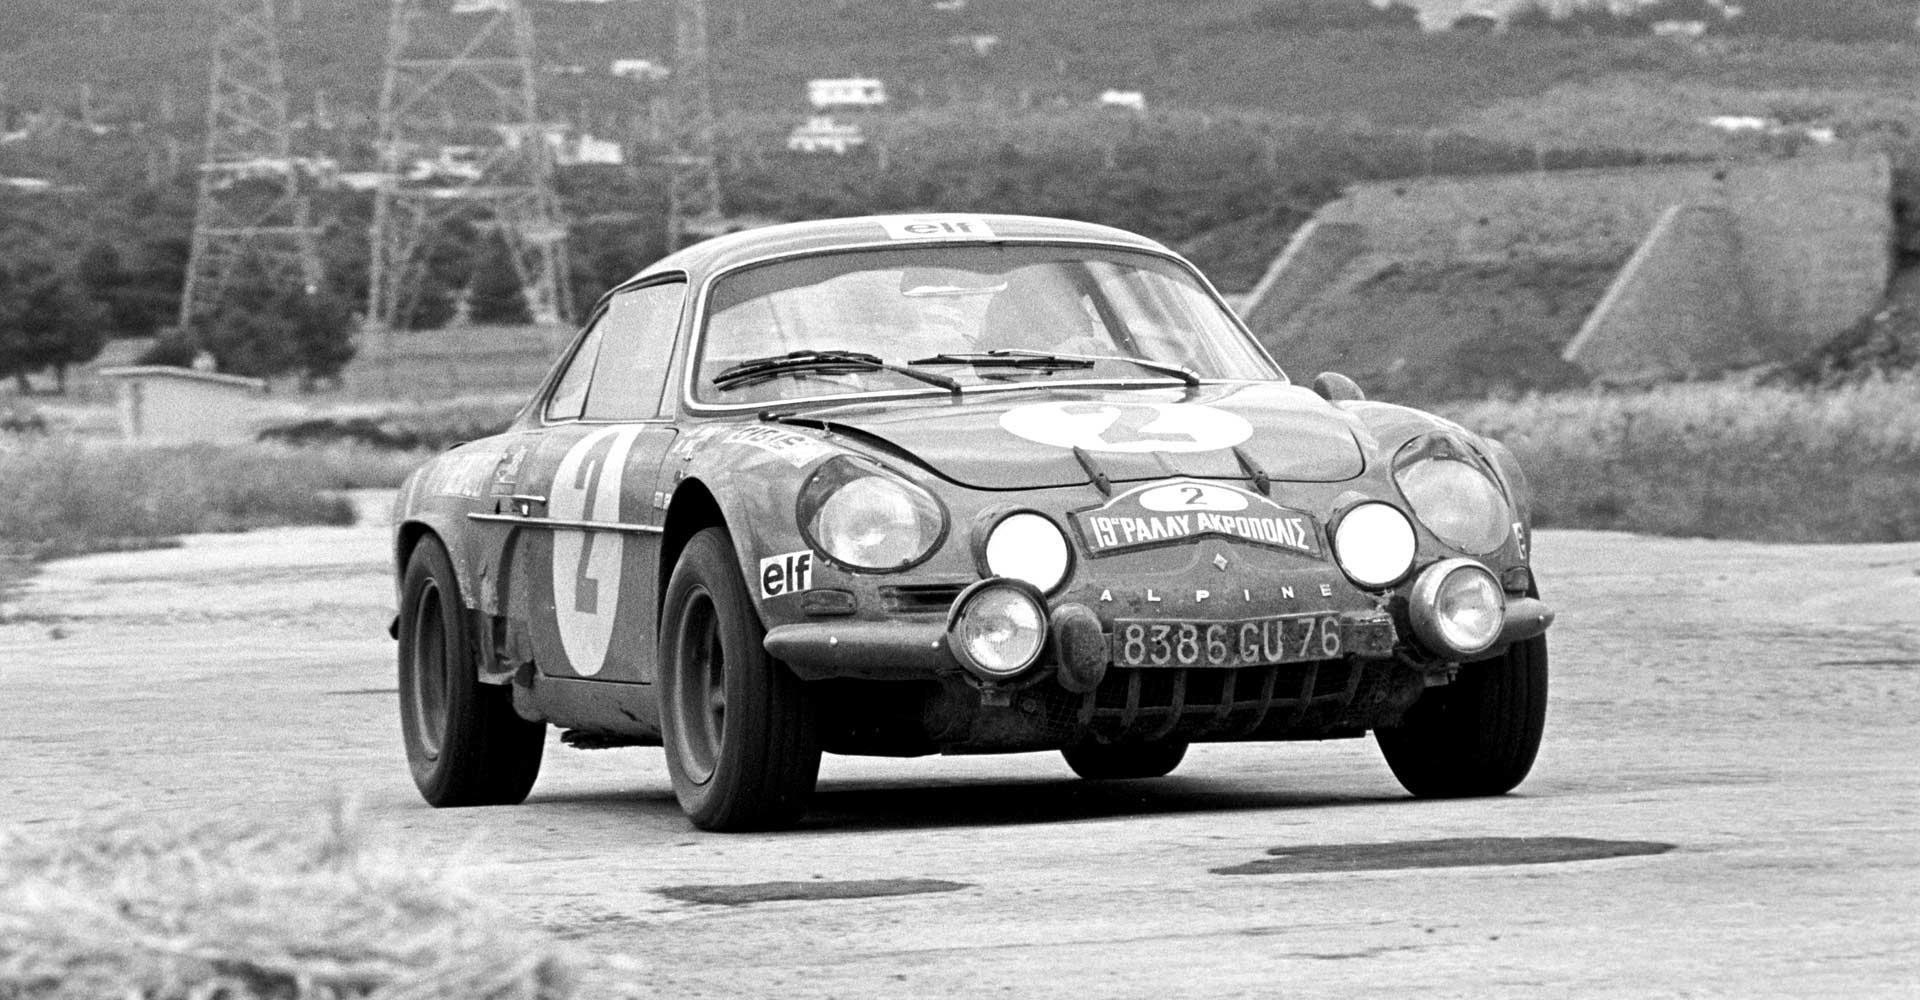 a110-acropoli-rally